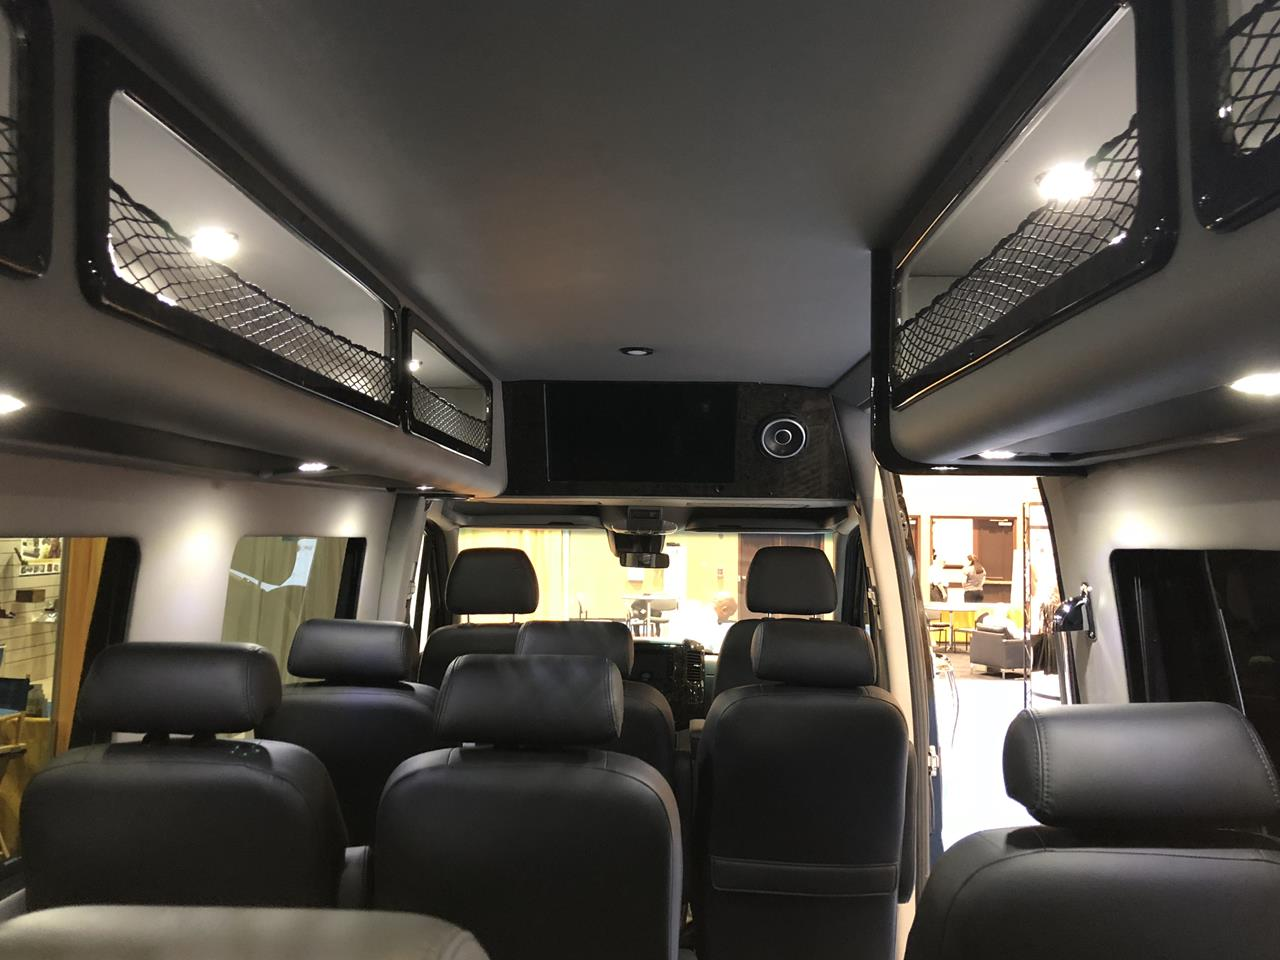 2018 Mercedes Executive Shuttle 14 Passenger Limousine 17